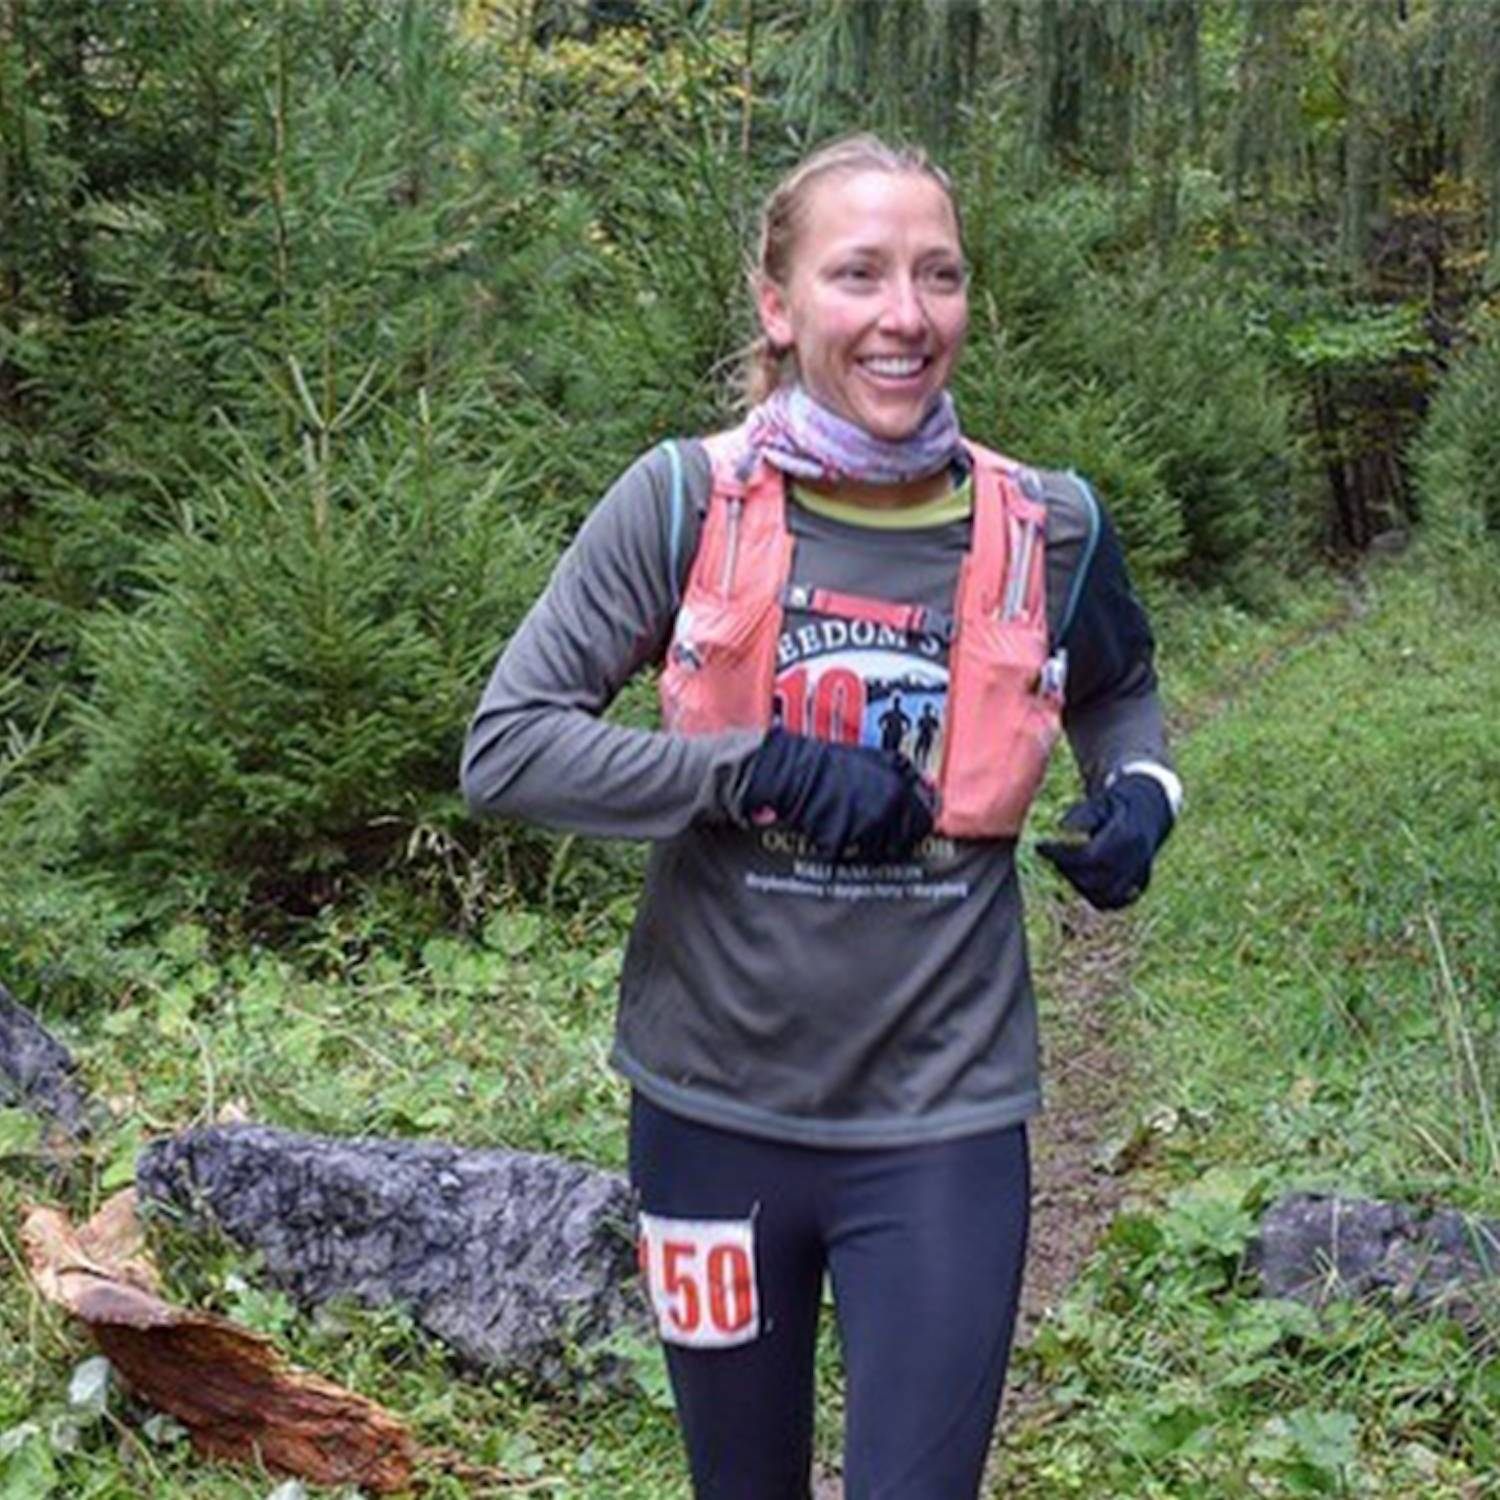 katie thompson running trail race in WV